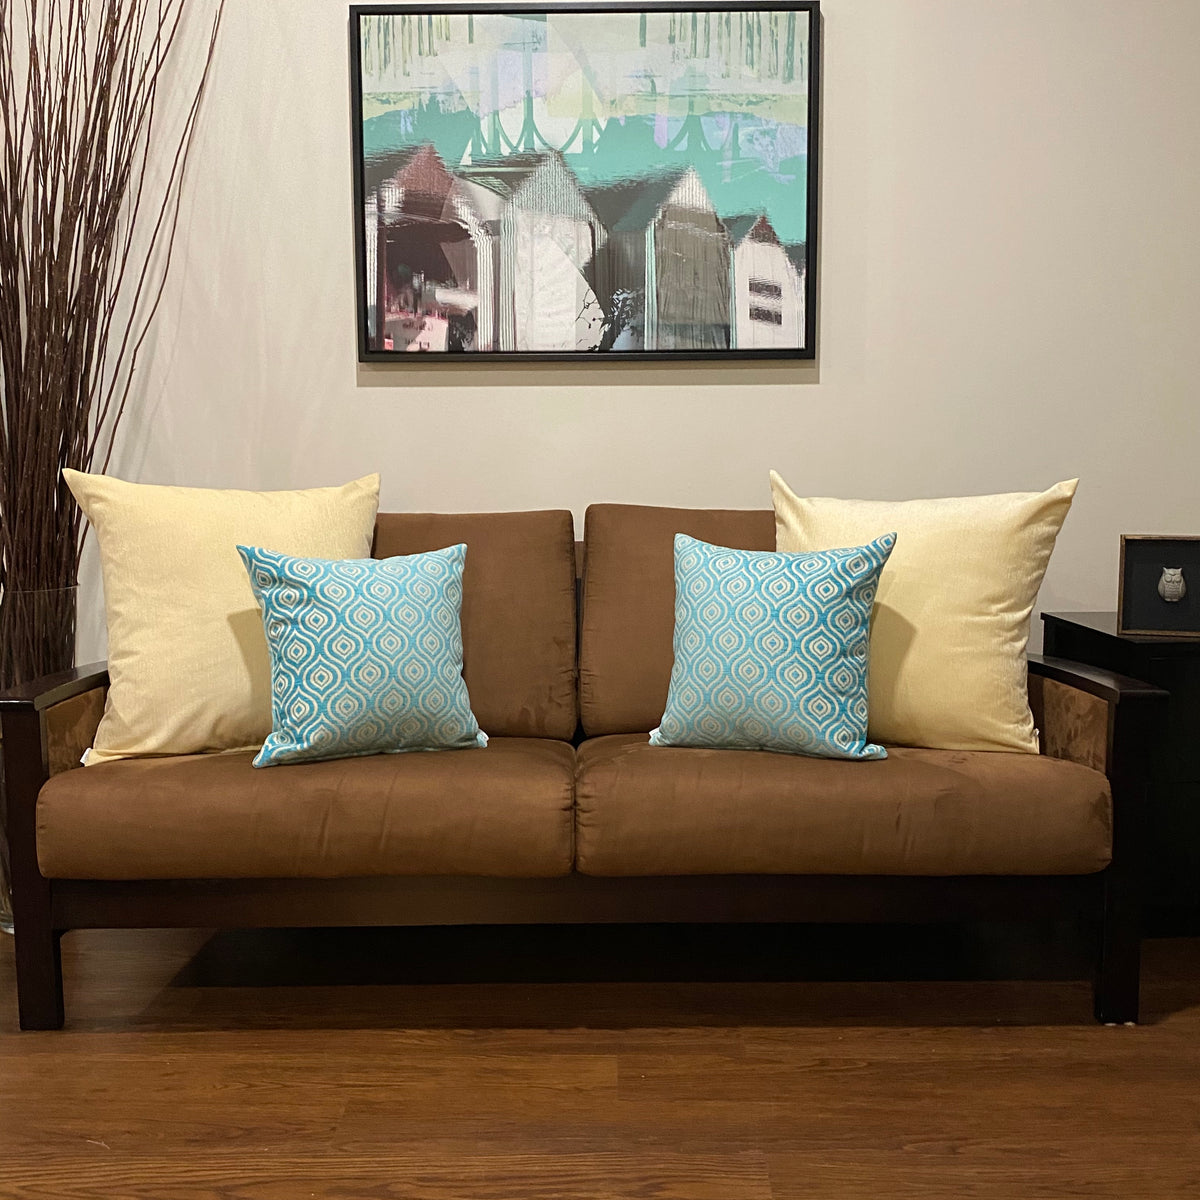 Brown Couch Decorative Pillows Teal Yellow